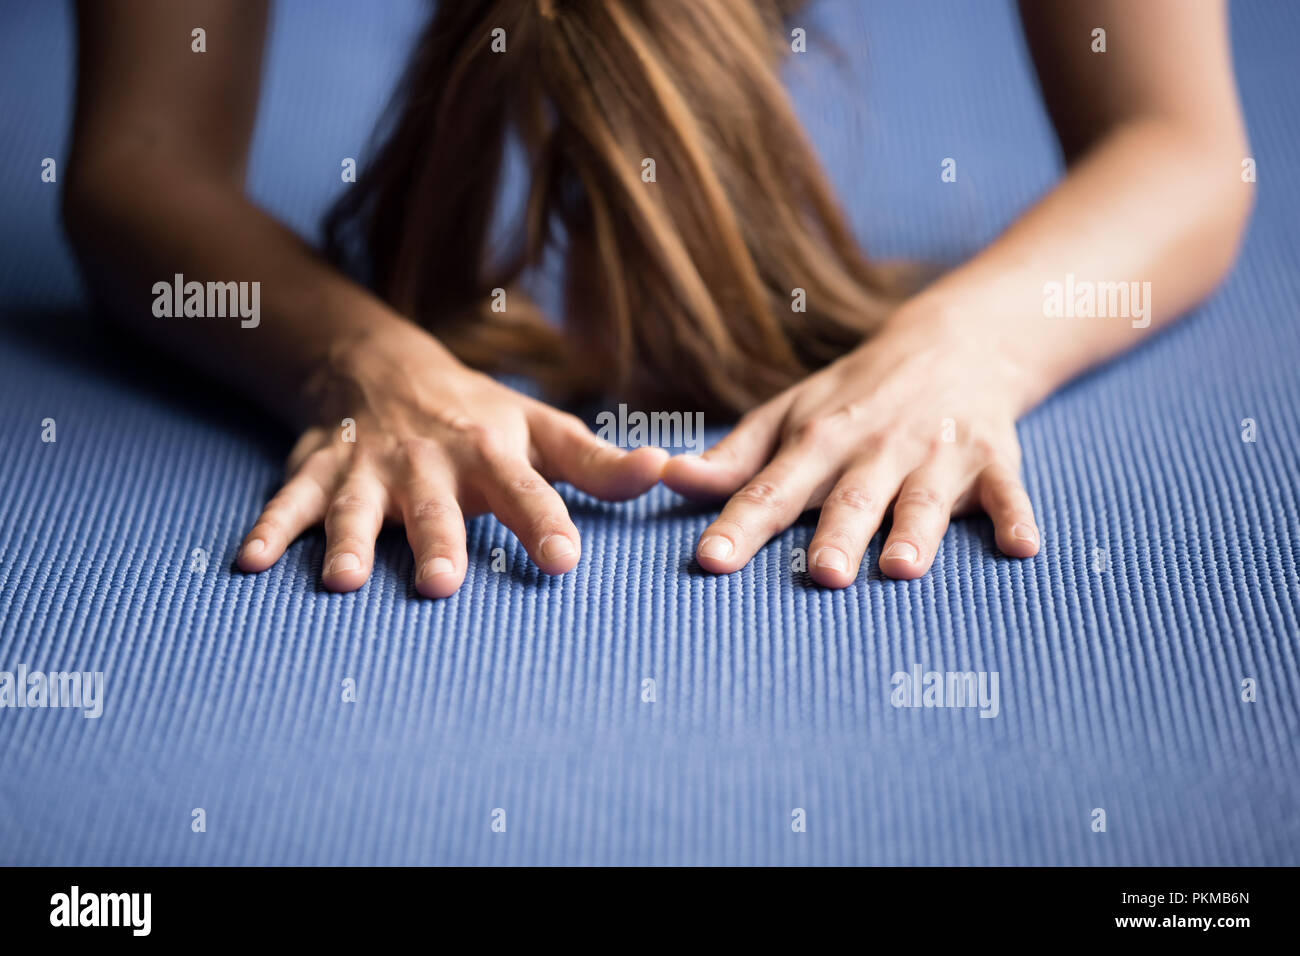 Sporty woman practicing yoga on a blue mat - Stock Image